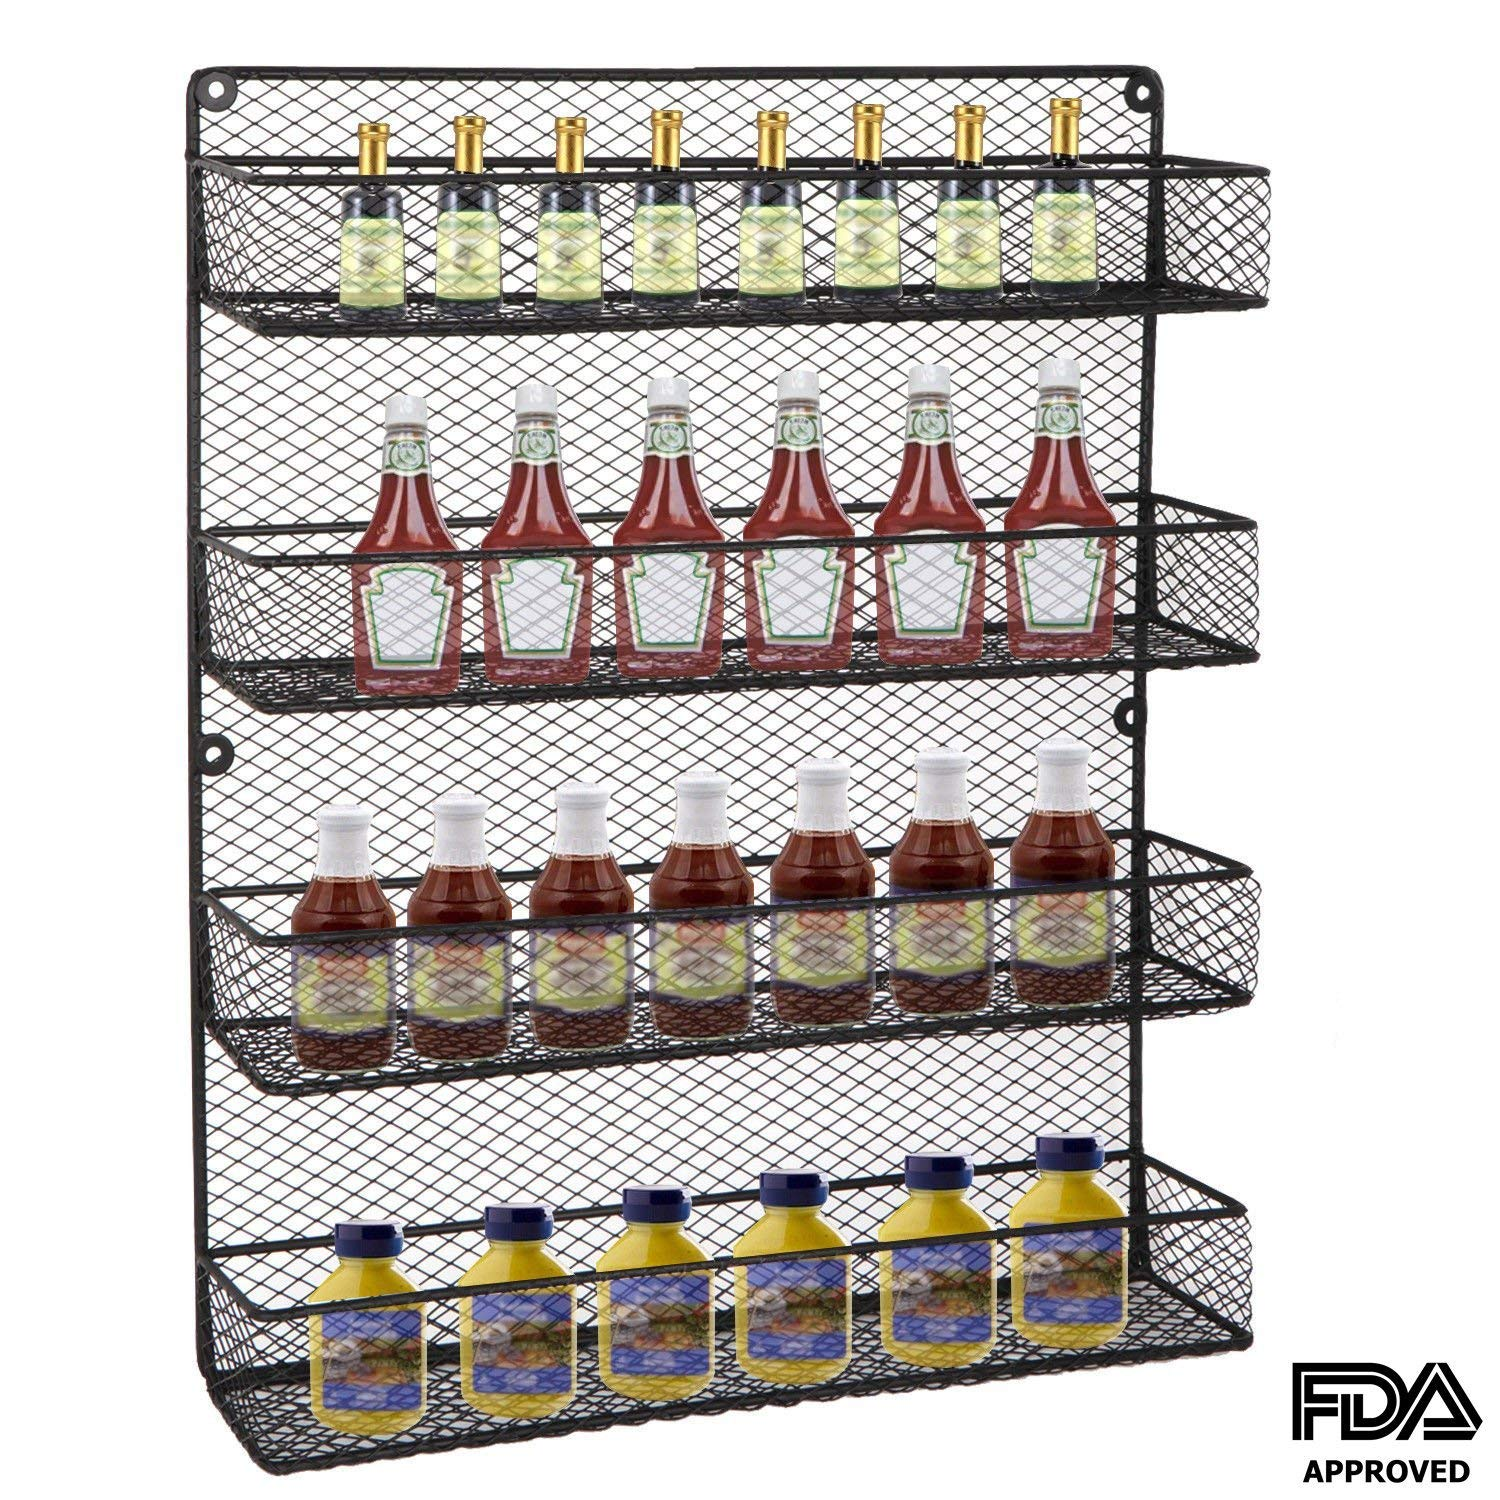 Metal 4 Tier Chicken Wire Wall Mounted Storage Jar Rack Black | Hold Spice Bottles Shakes Everyday Kitchen Items 44 Lbs Capacity Strong | Organizing Bathroom Essentials Cosmetics Craft Oils Home